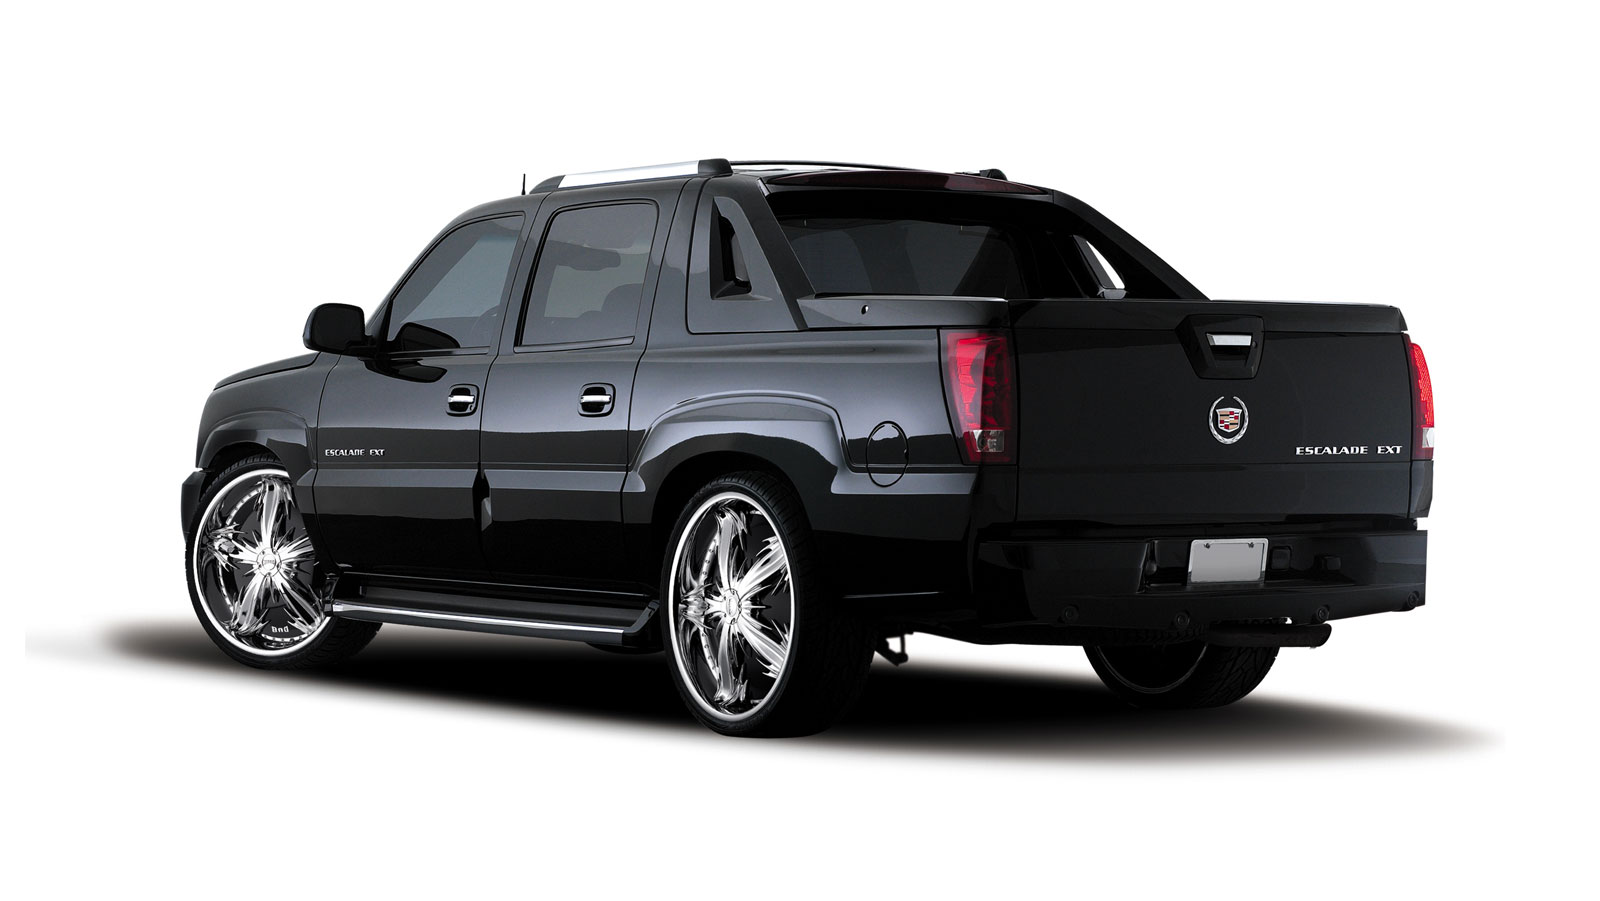 Cadillac Escalade EXT New Car Specifications Wallpaper For Desktop